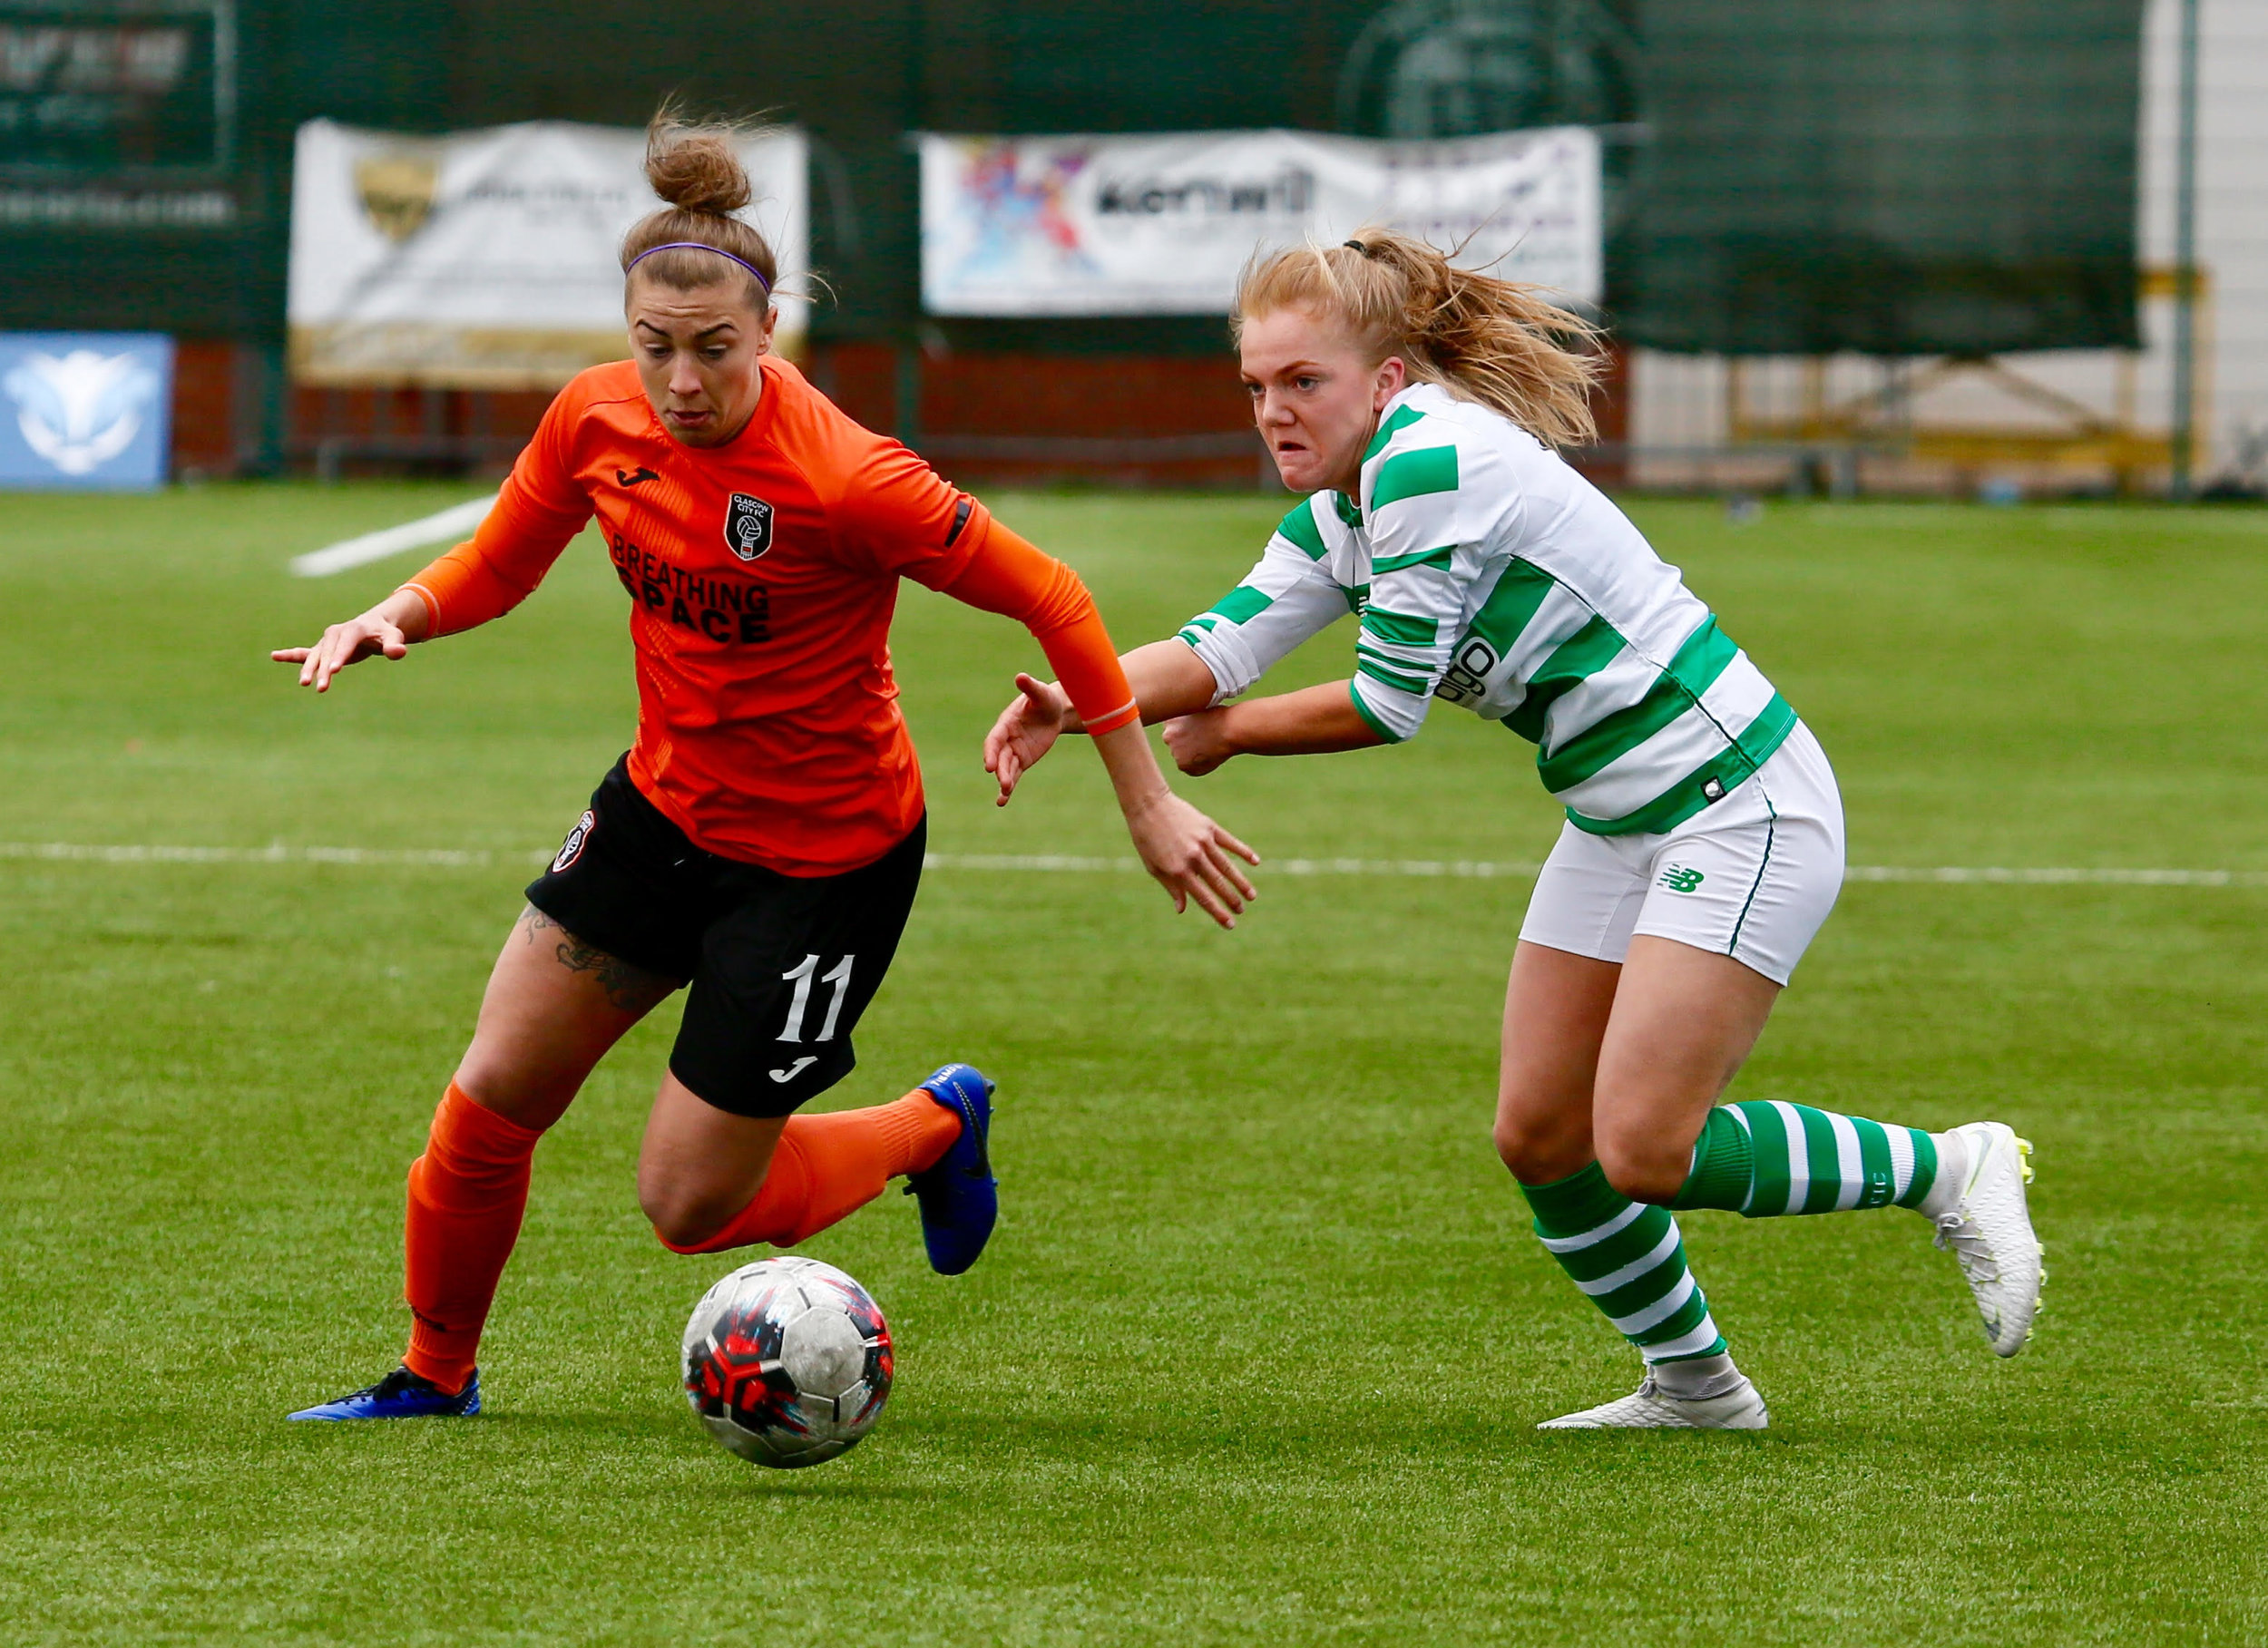 City's Nicola Docherty skips past Celtic's Kodie Hay. (image by Andy Buist